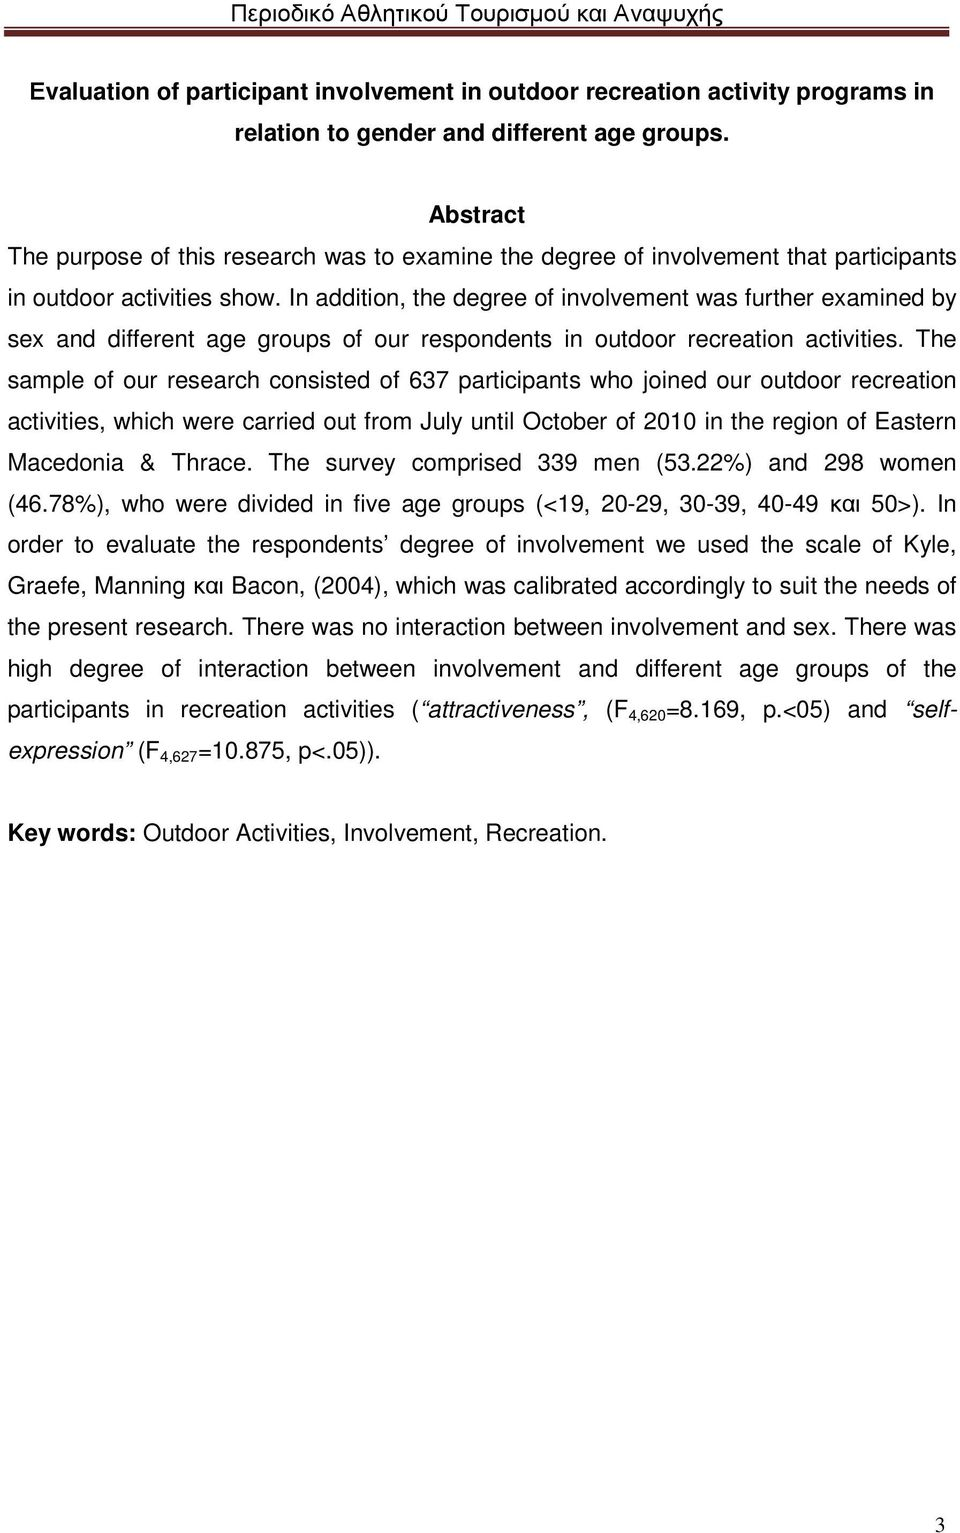 In addition, the degree of involvement was further examined by sex and different age groups of our respondents in outdoor recreation activities.